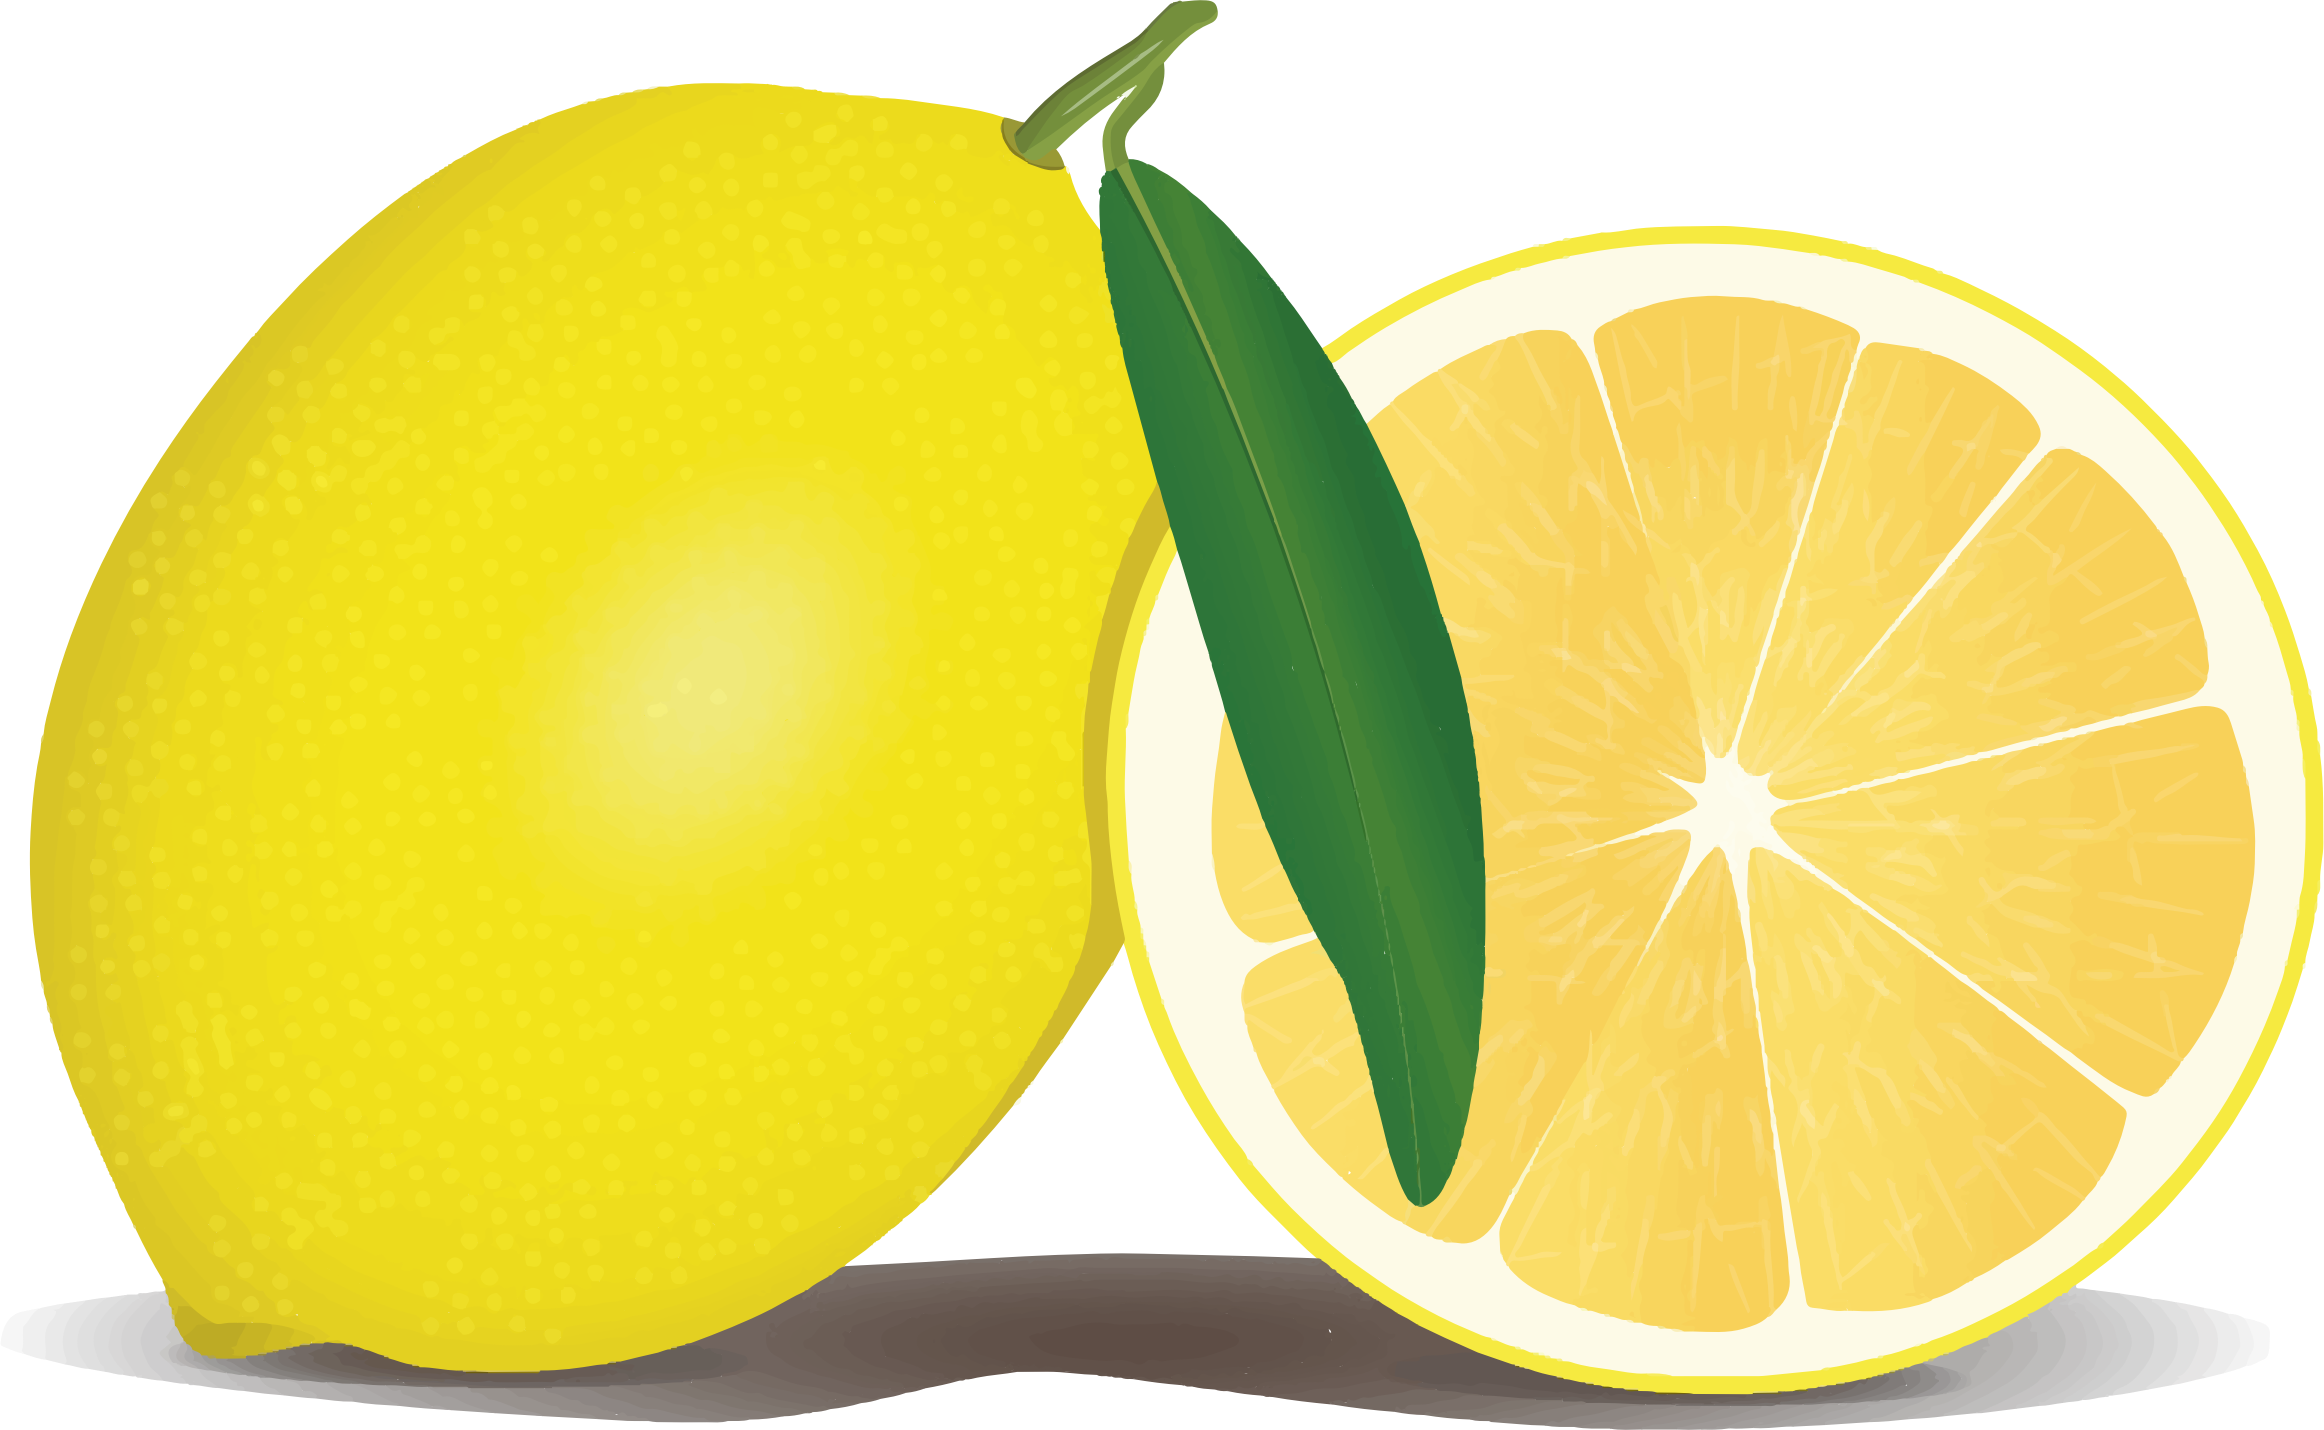 Lemon by GDJ